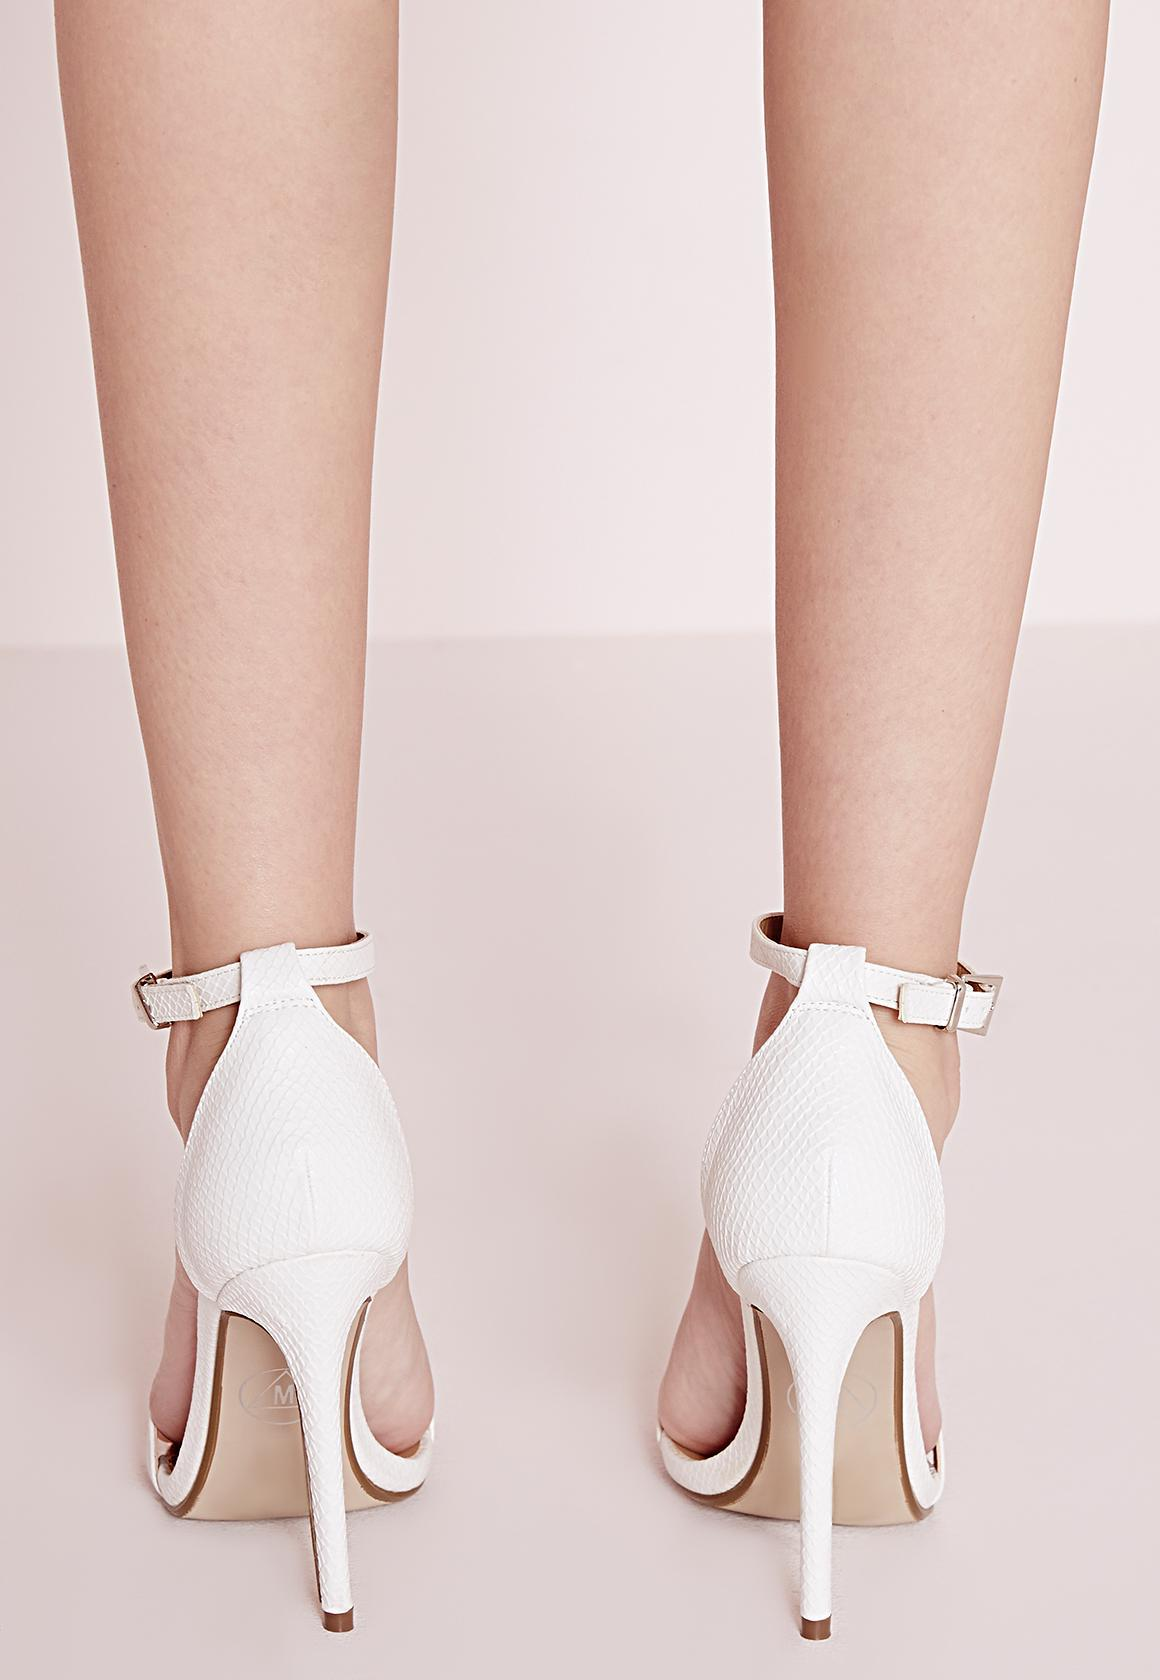 bdb33829e3 Missguided Barely There Strappy Heeled Sandals White Croc in White ...